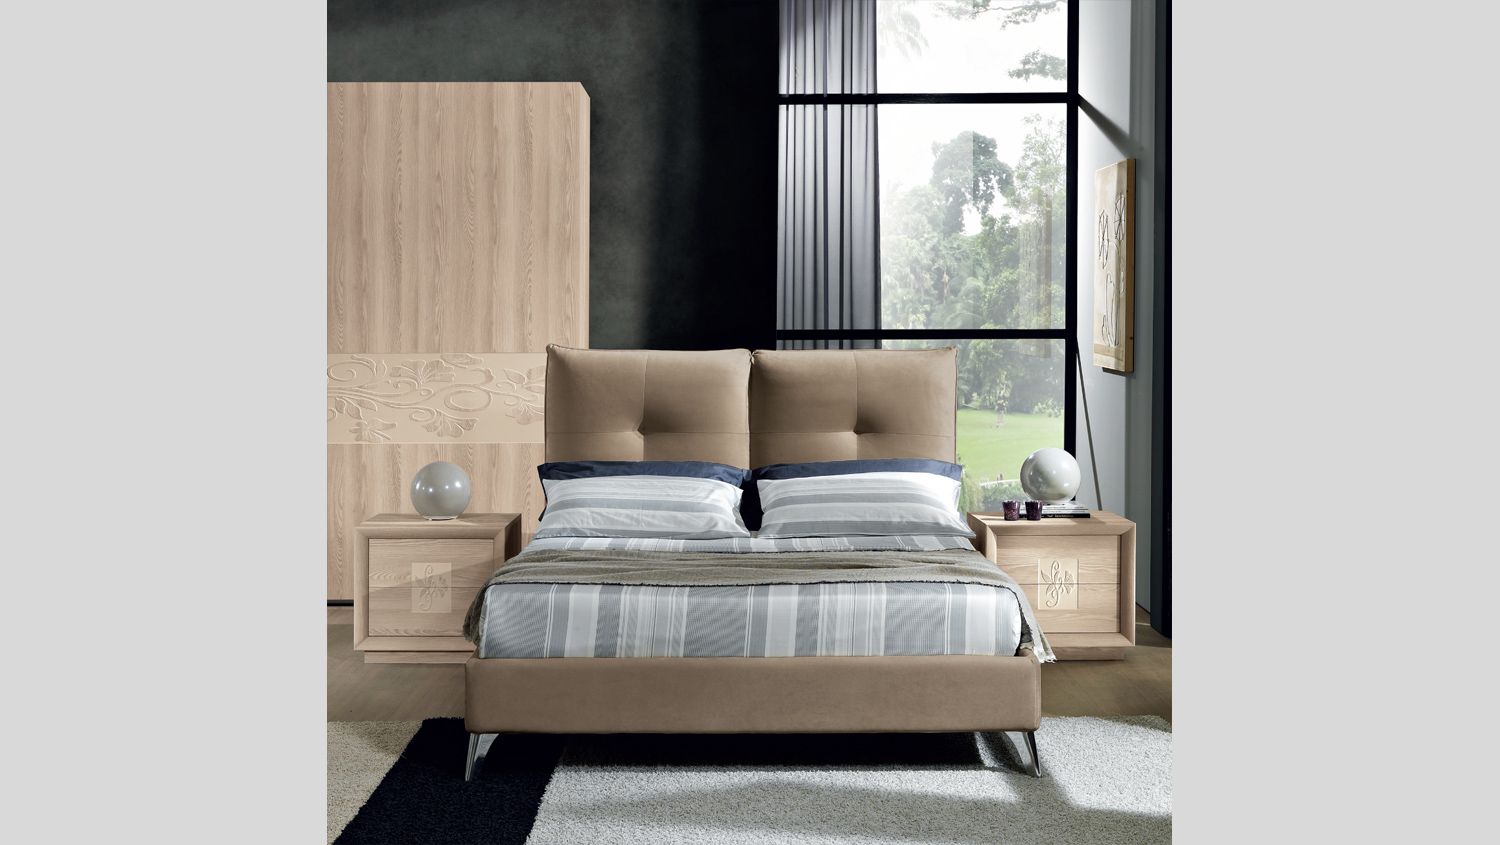 Kira - Letto moderno Made in Italy